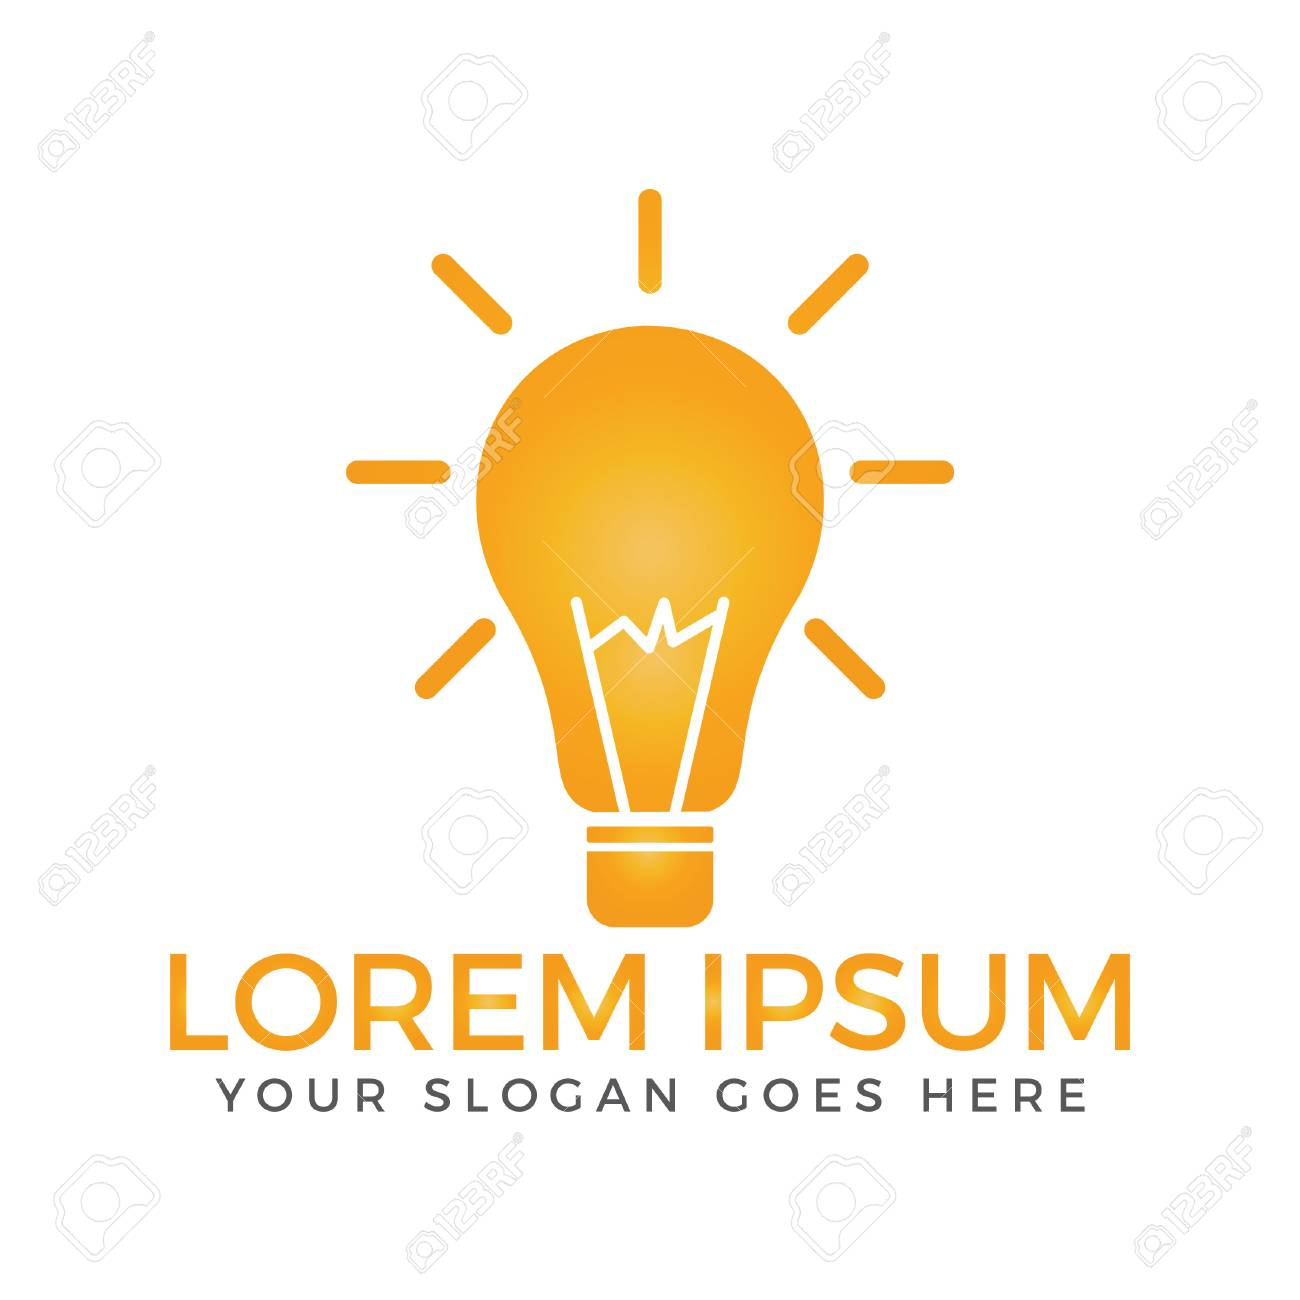 Creative Light Bulb Logo Design Royalty Free Cliparts Vectors And Stock Illustration Image 93209137